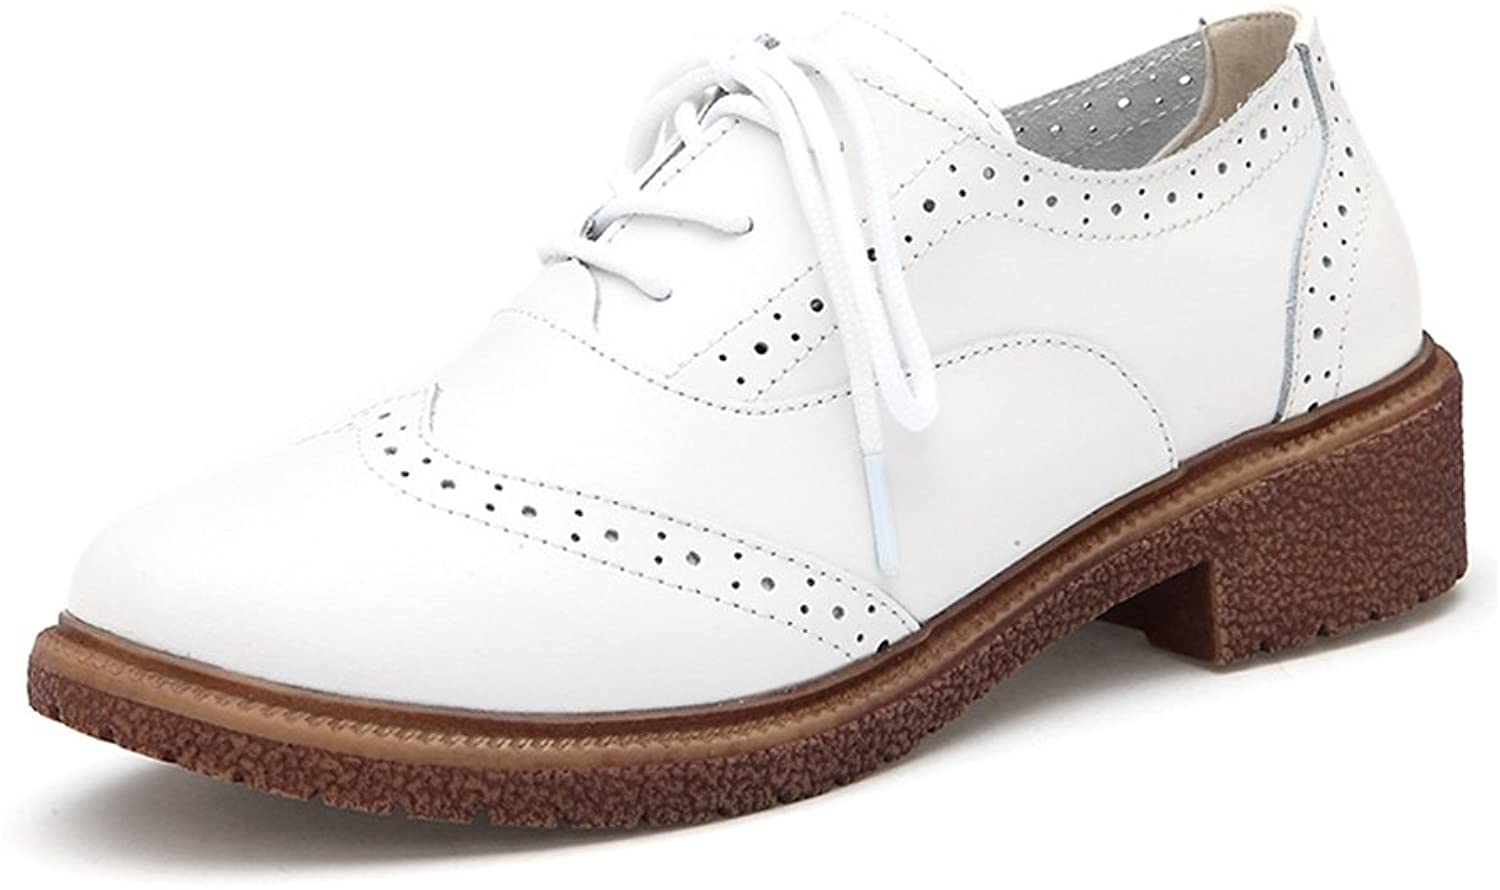 T-JULY Women's Western Oxfords shoes - Breathable Perforated Low Wedge Round Toe shoes